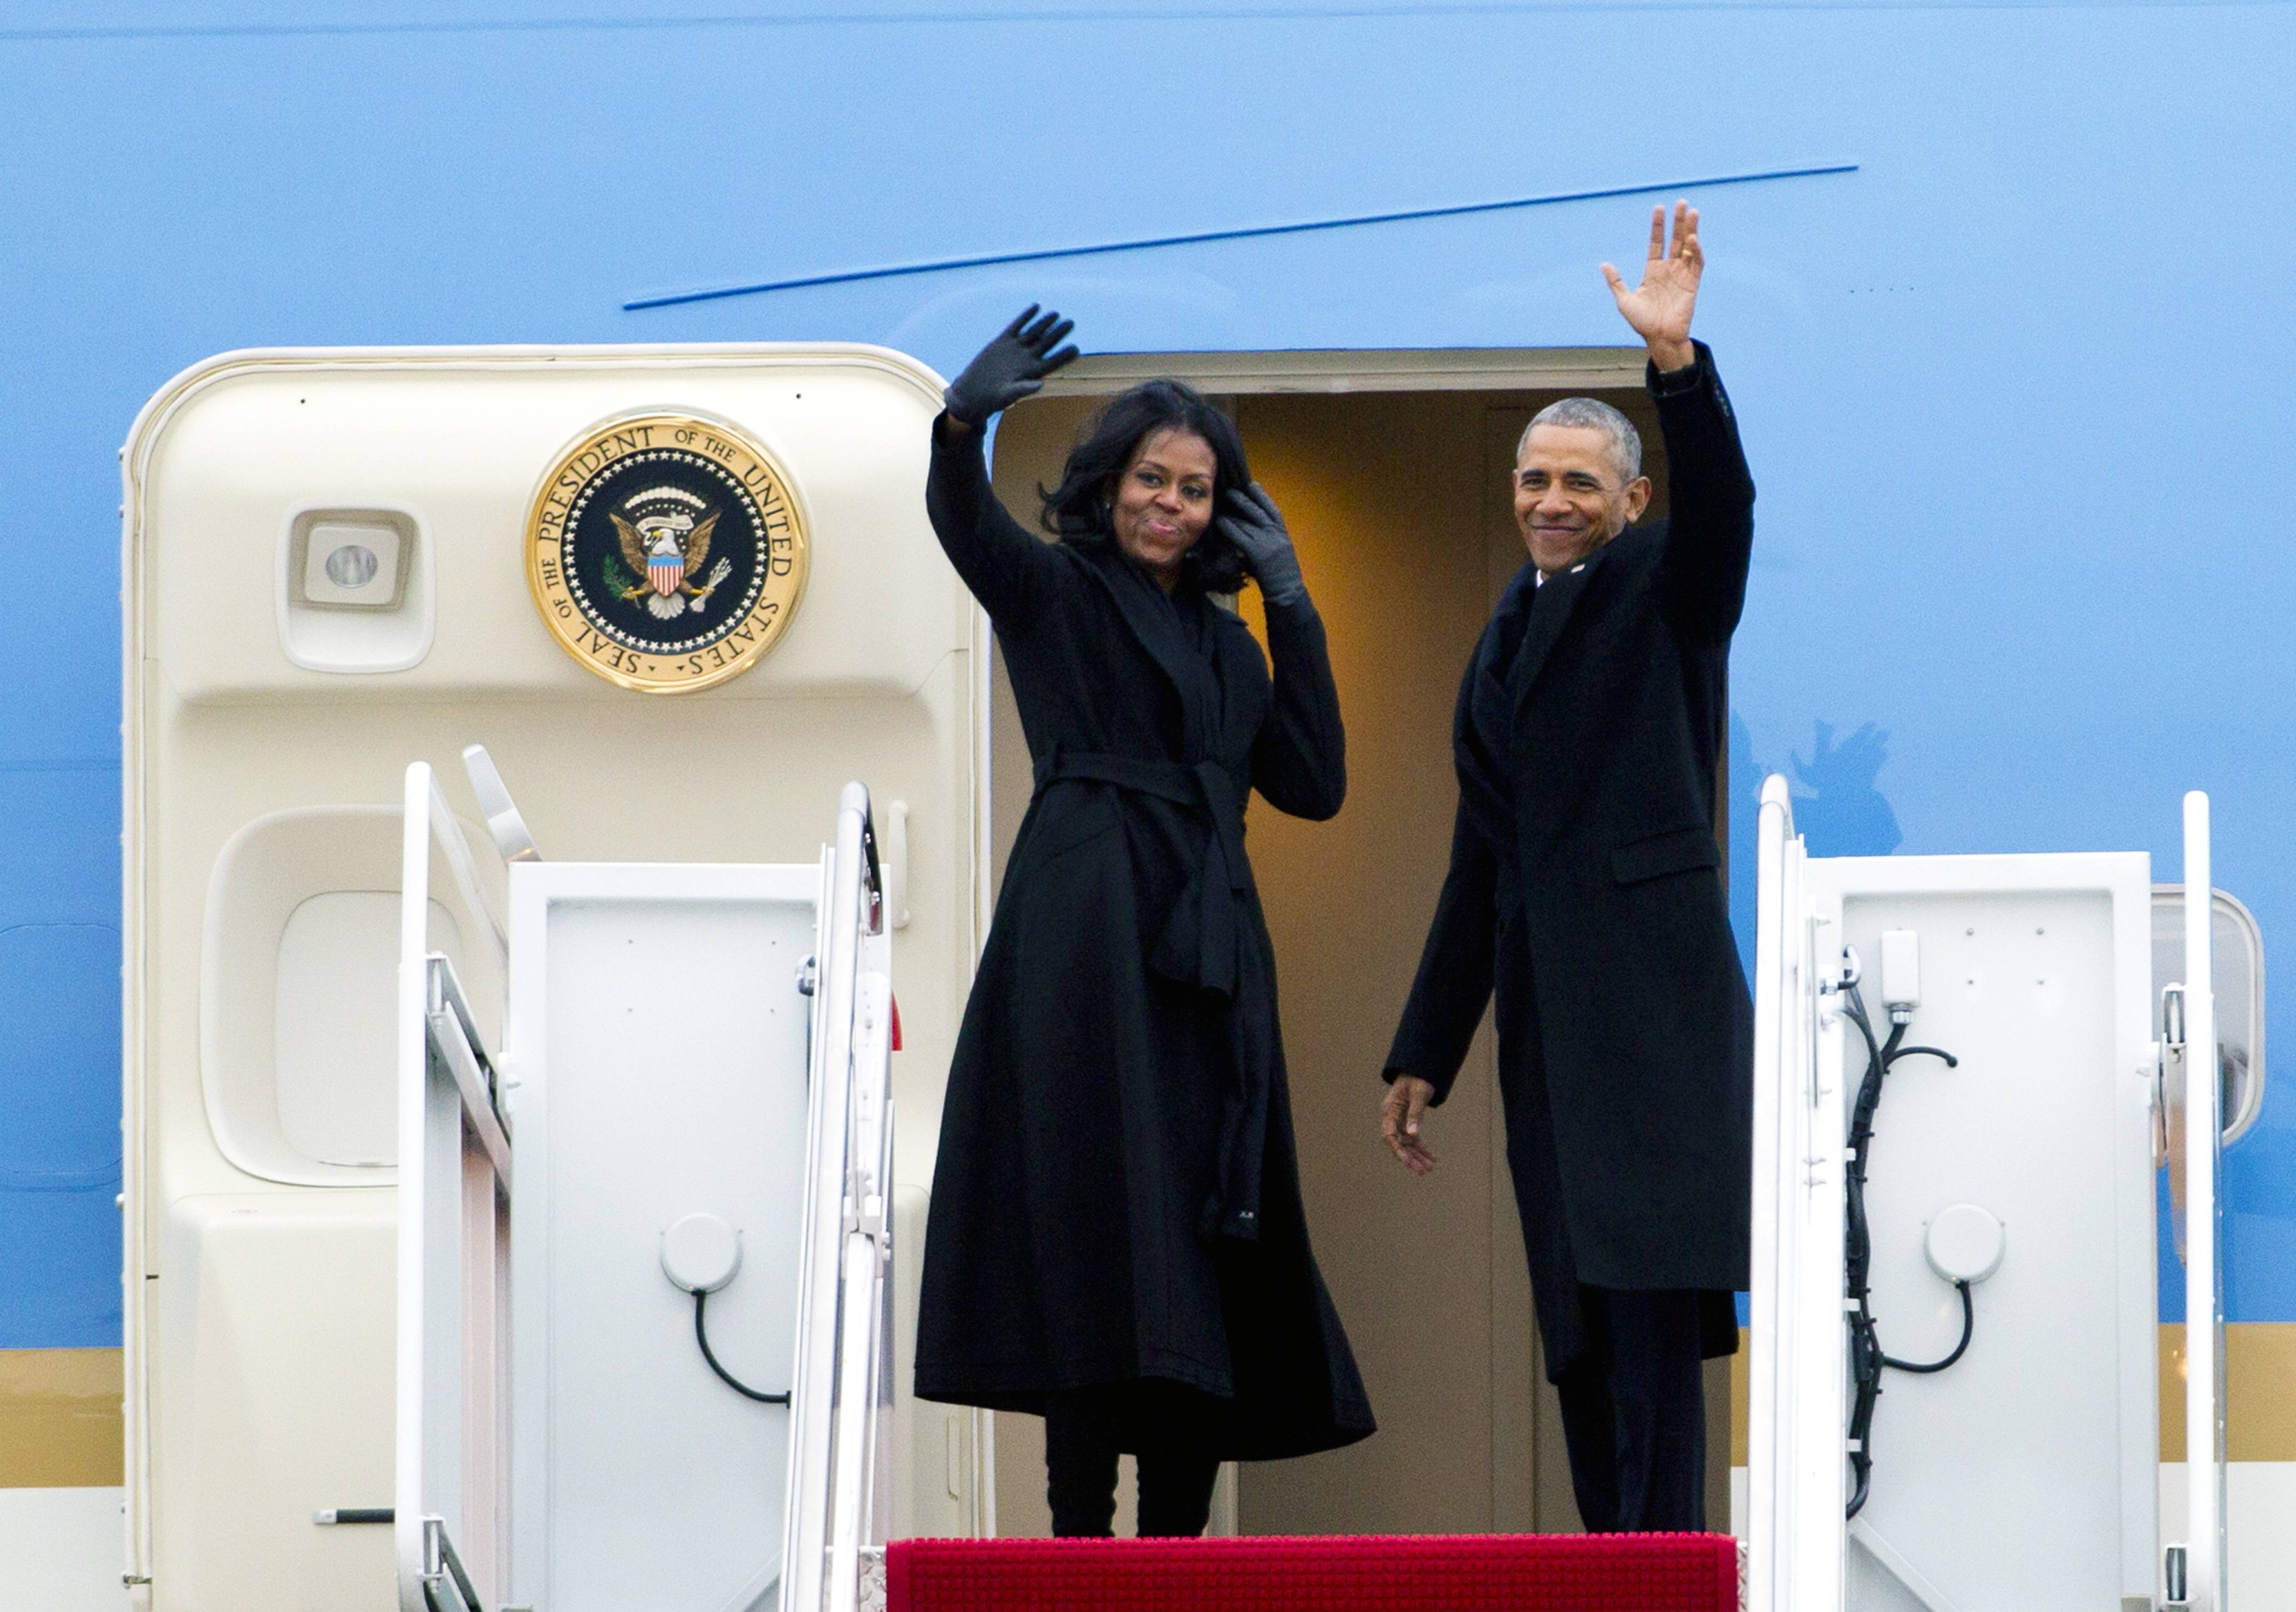 Winds delay flights, mess up traffic as Obama arrives in Chicago